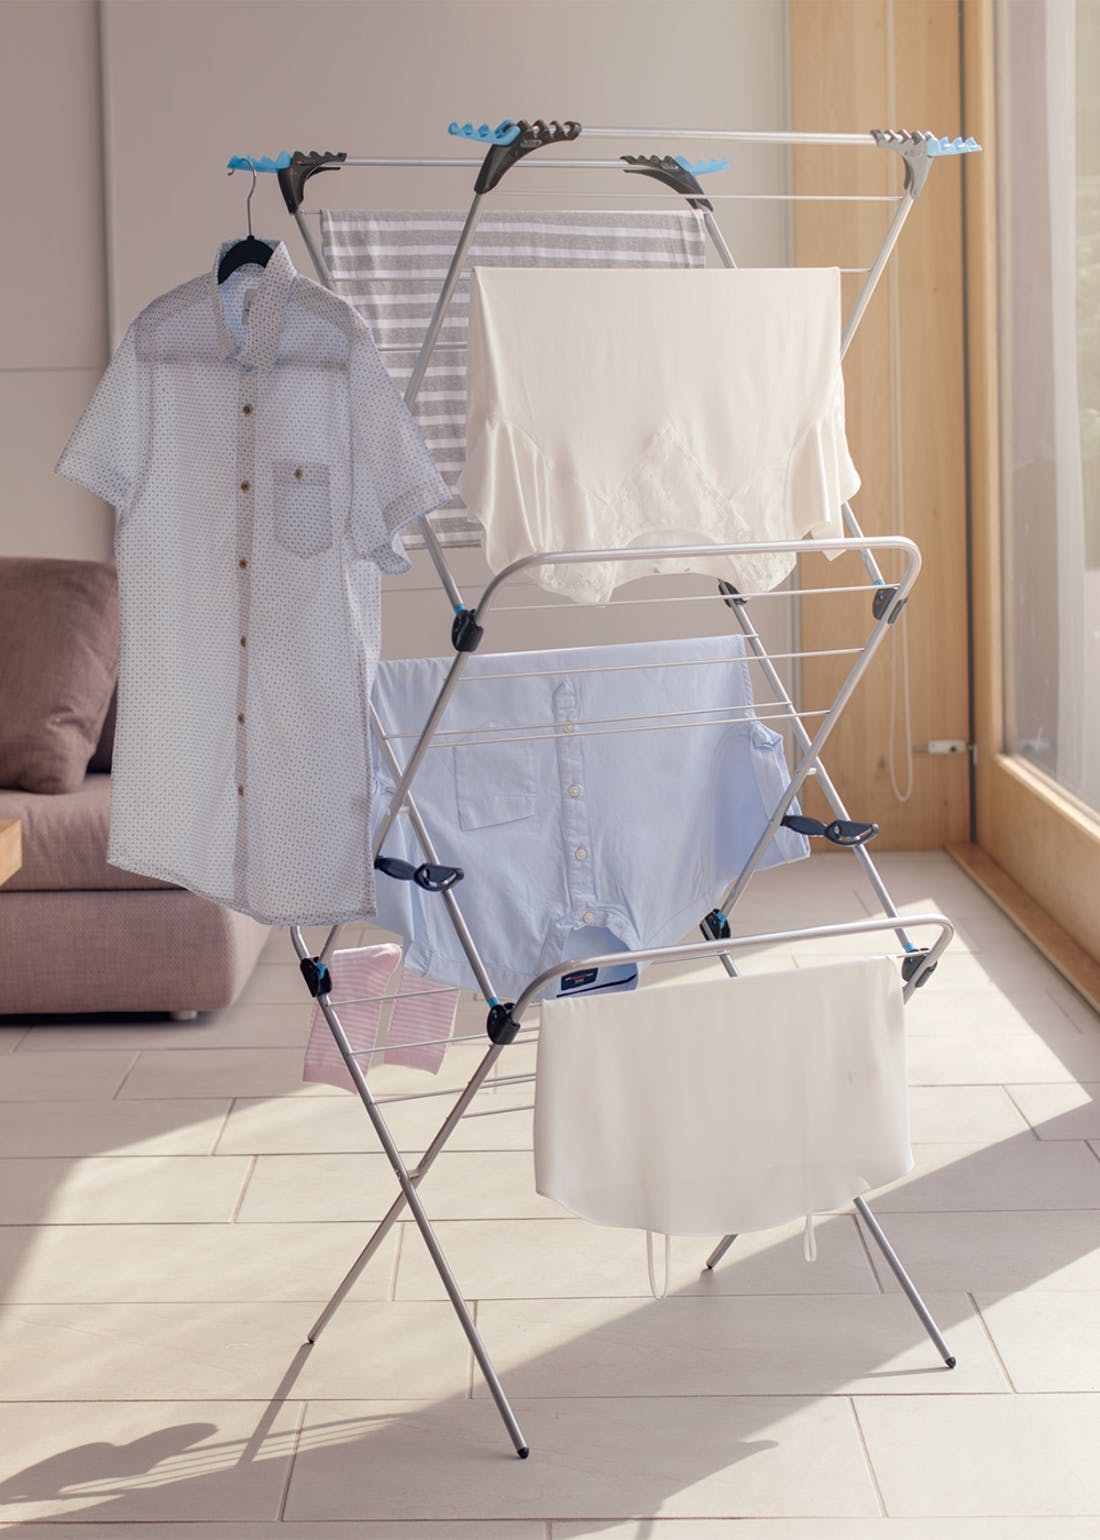 Minky 3 In 1 Airer (60cm x 80cm x 8cm)